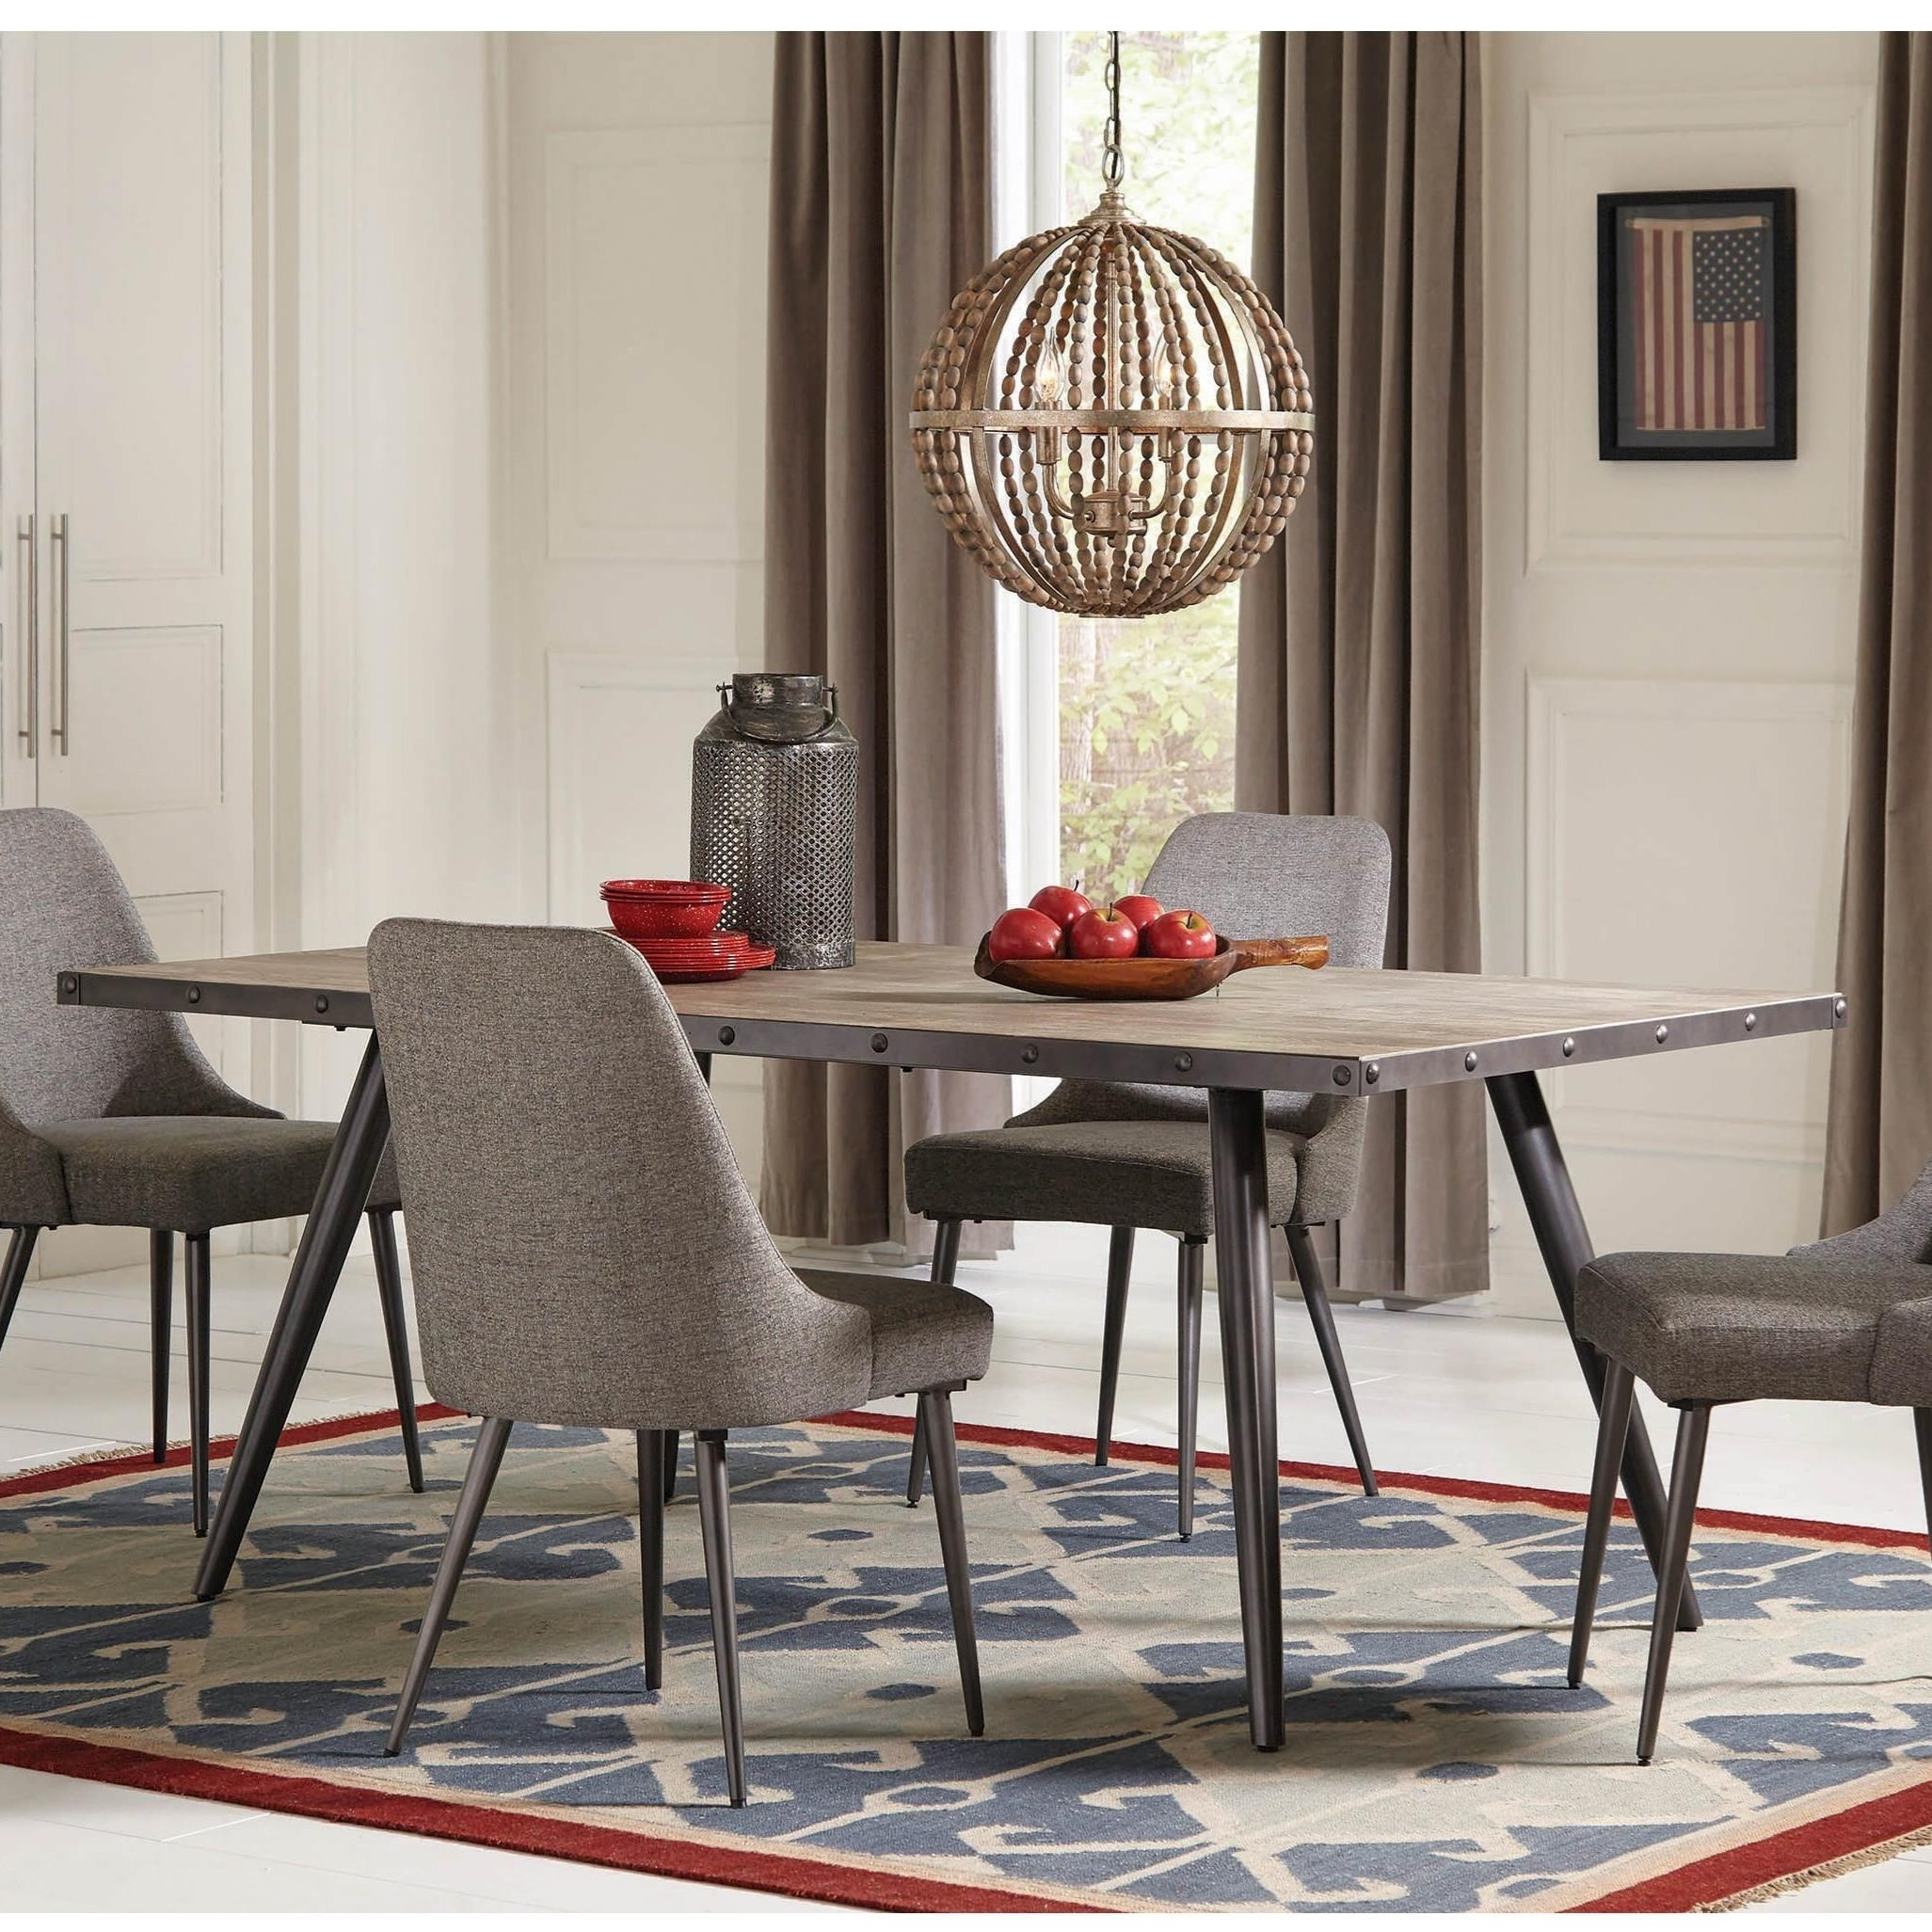 Superbe Levitt Industrial Dining Table With Metal Edge Banding By Coaster